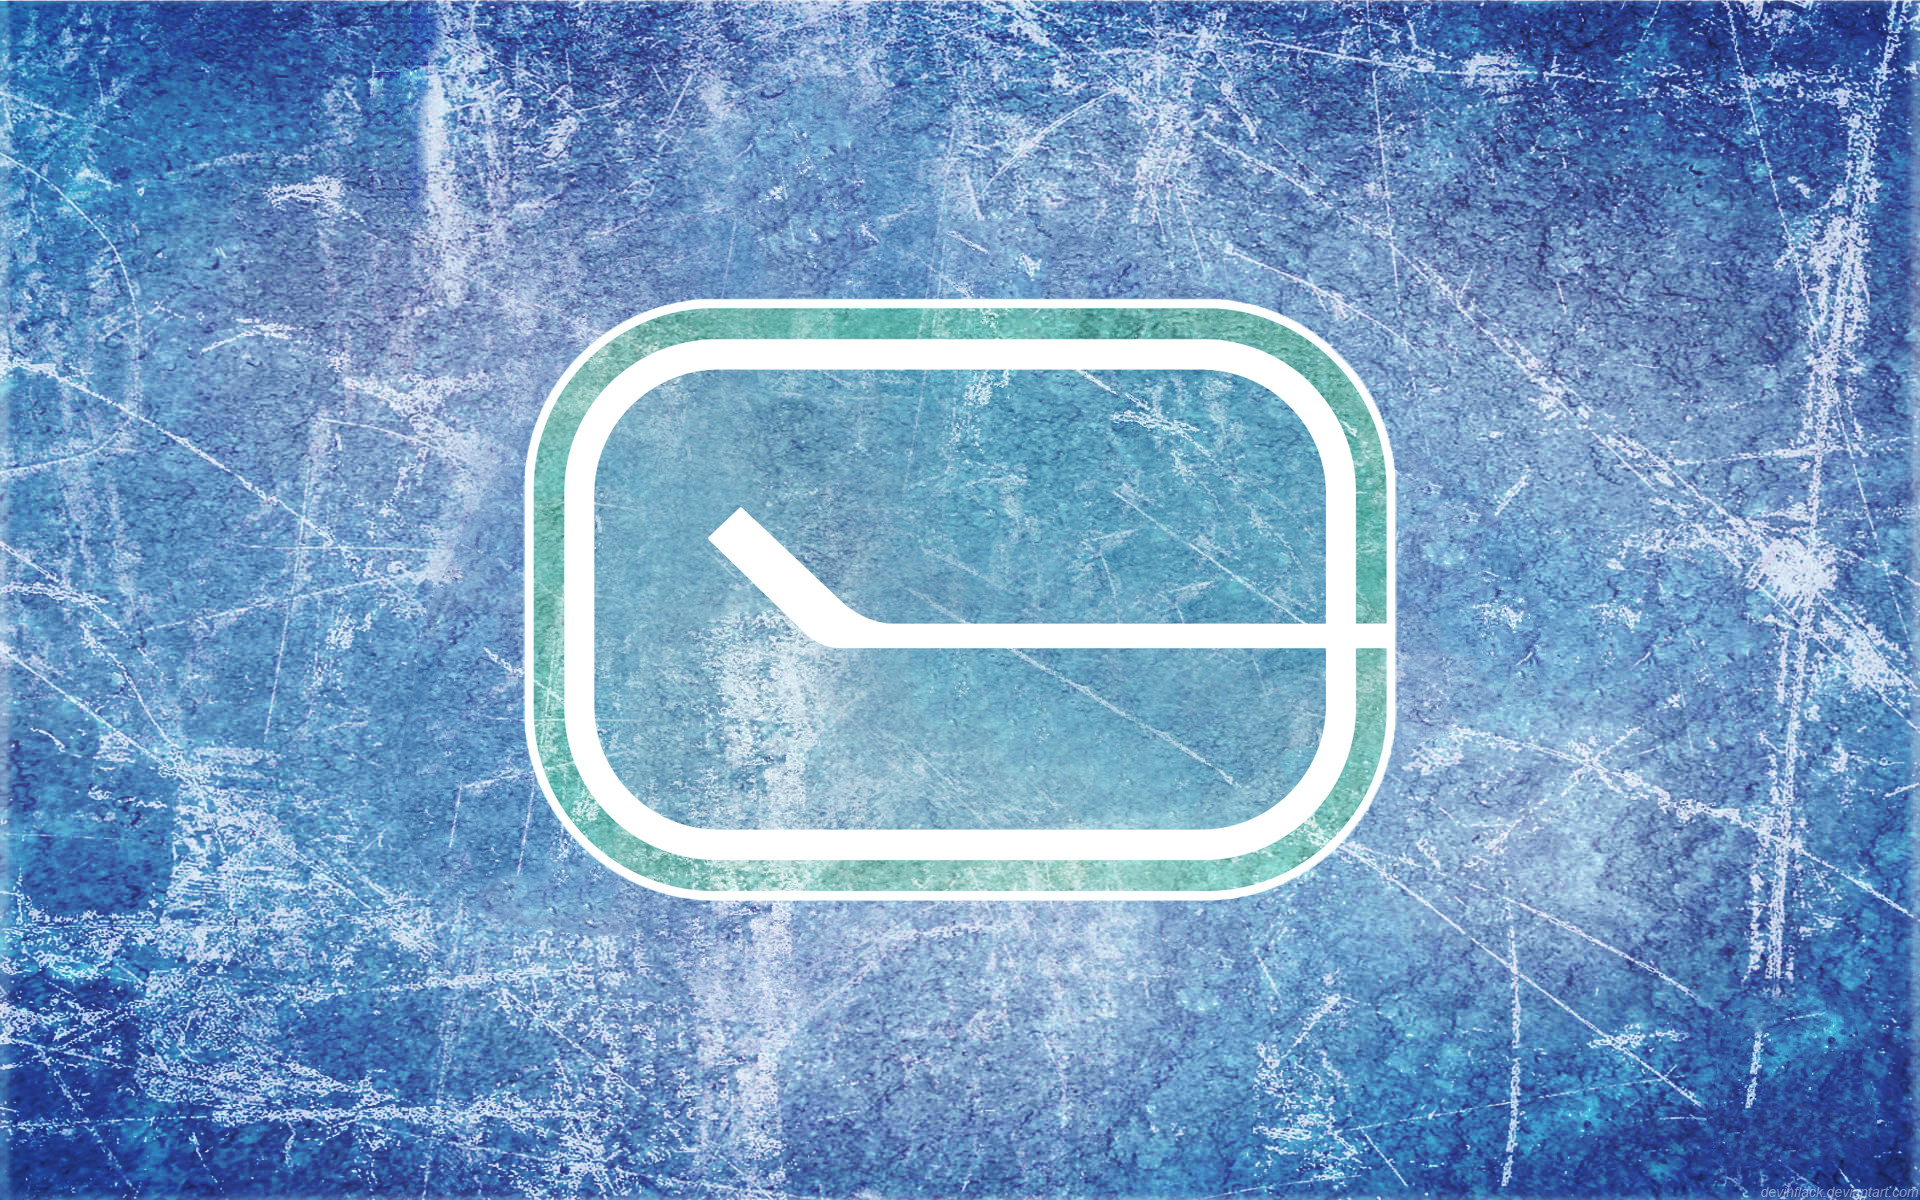 Res: 1920x1200, Canucks Alt Ice Wallpaper by DevinFlack Canucks Alt Ice Wallpaper by  DevinFlack